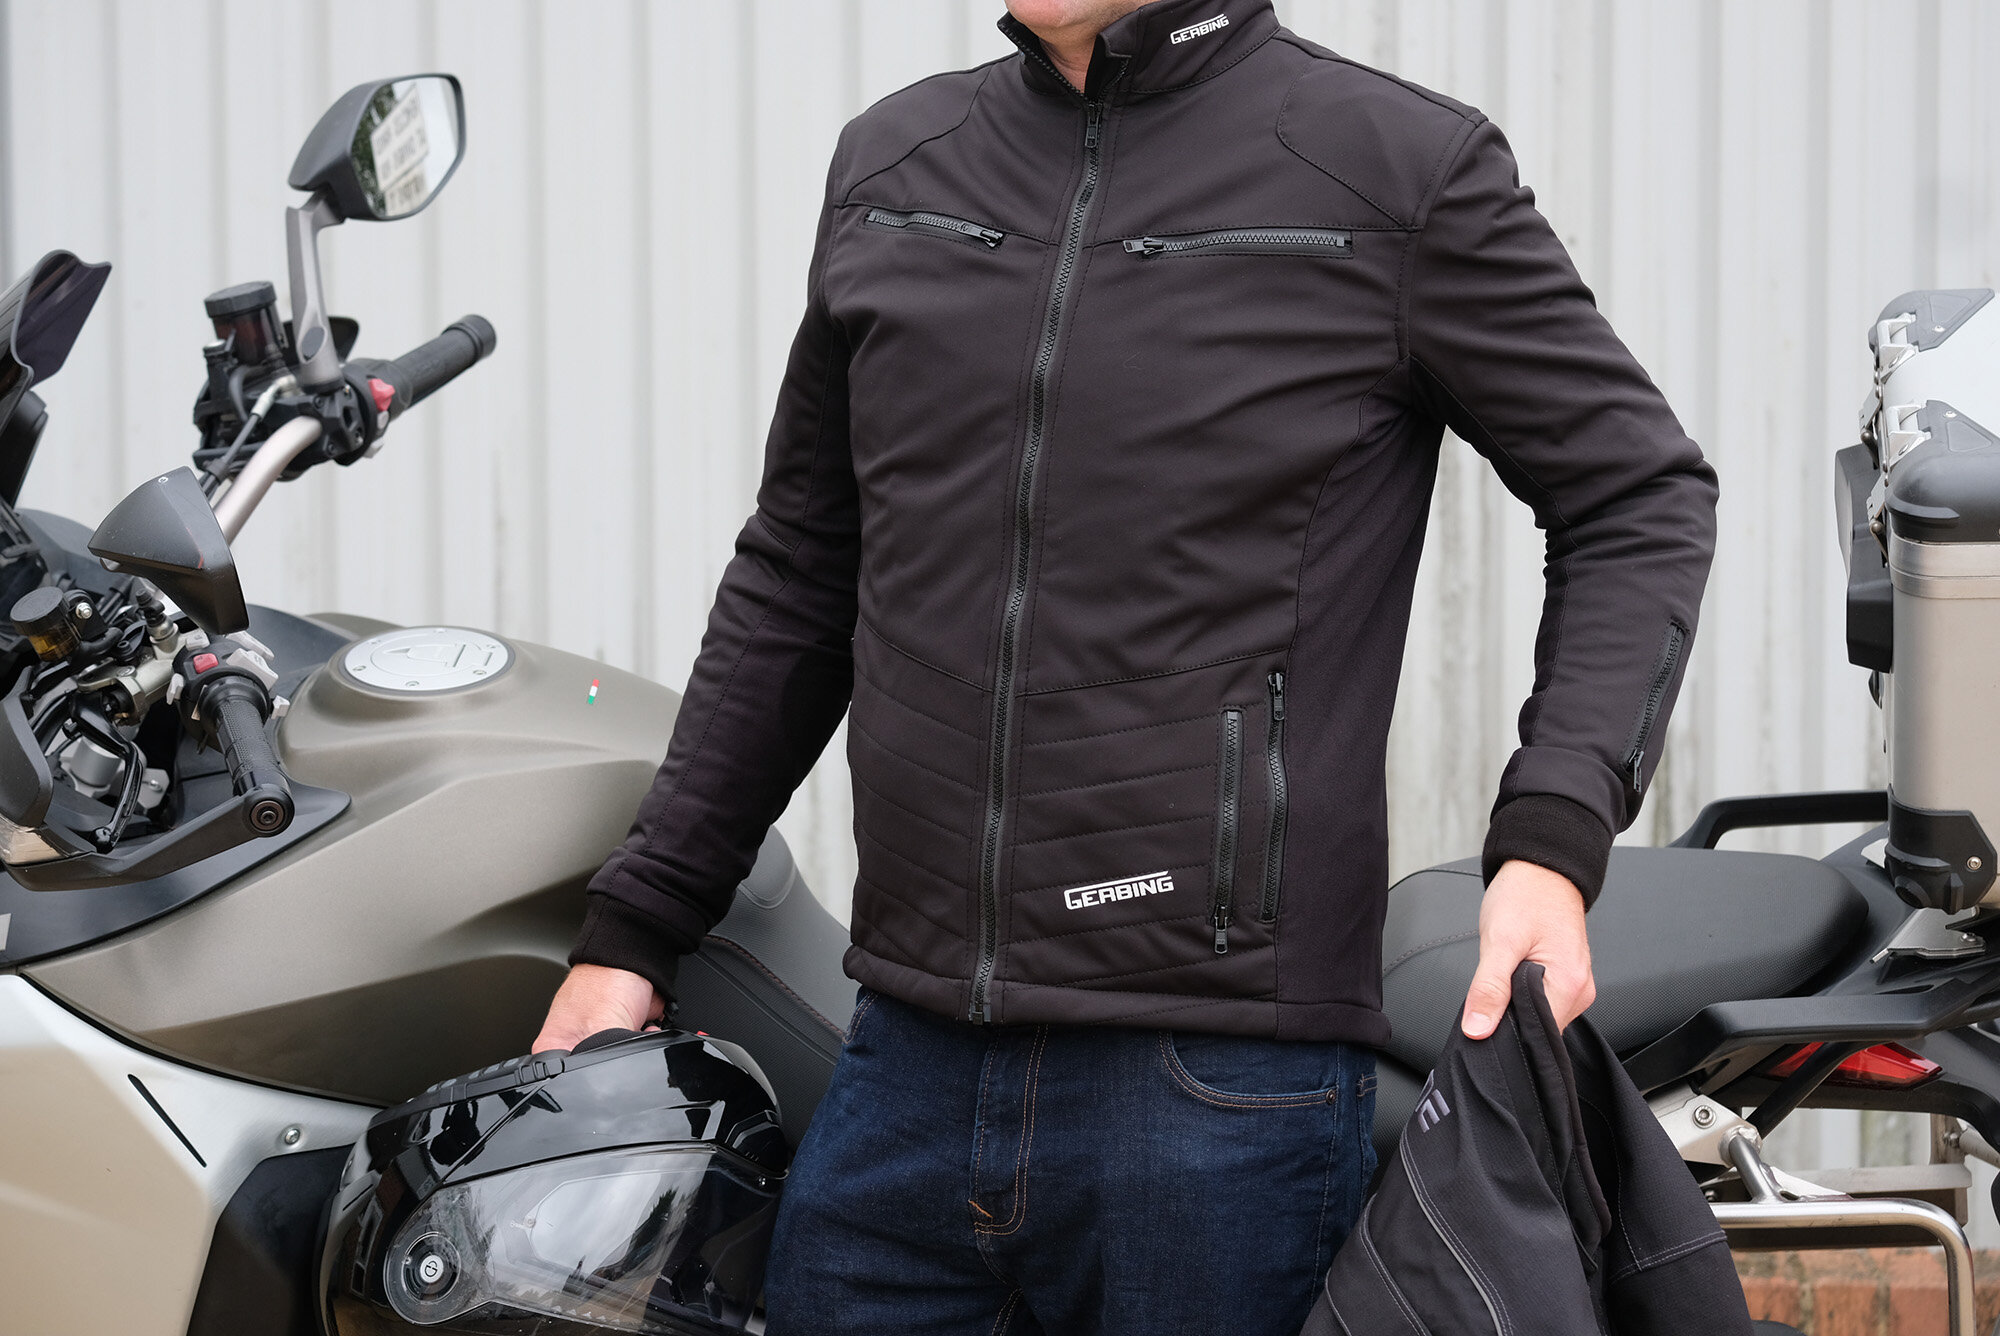 Gerbing UK heated motorcycle jacket